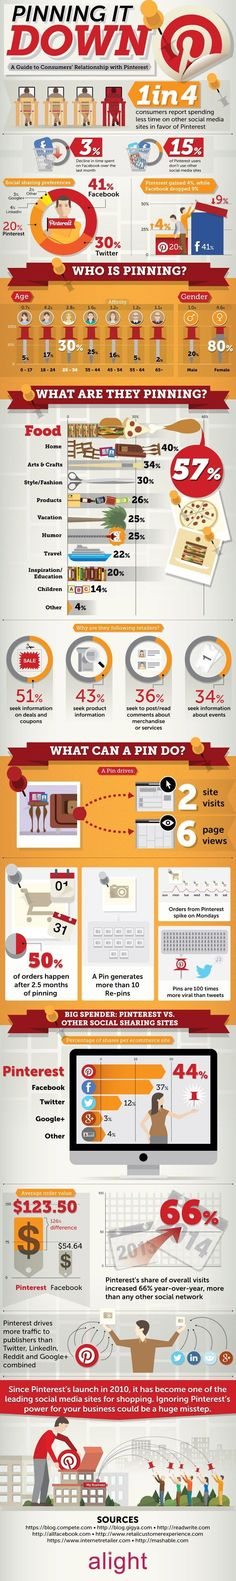 Great info about Pinterest!  Pinning it Down: A Guide to Consumers' Relationship with Pinterest [Infographic] #SocialMedia #Pinterest #Marketing: